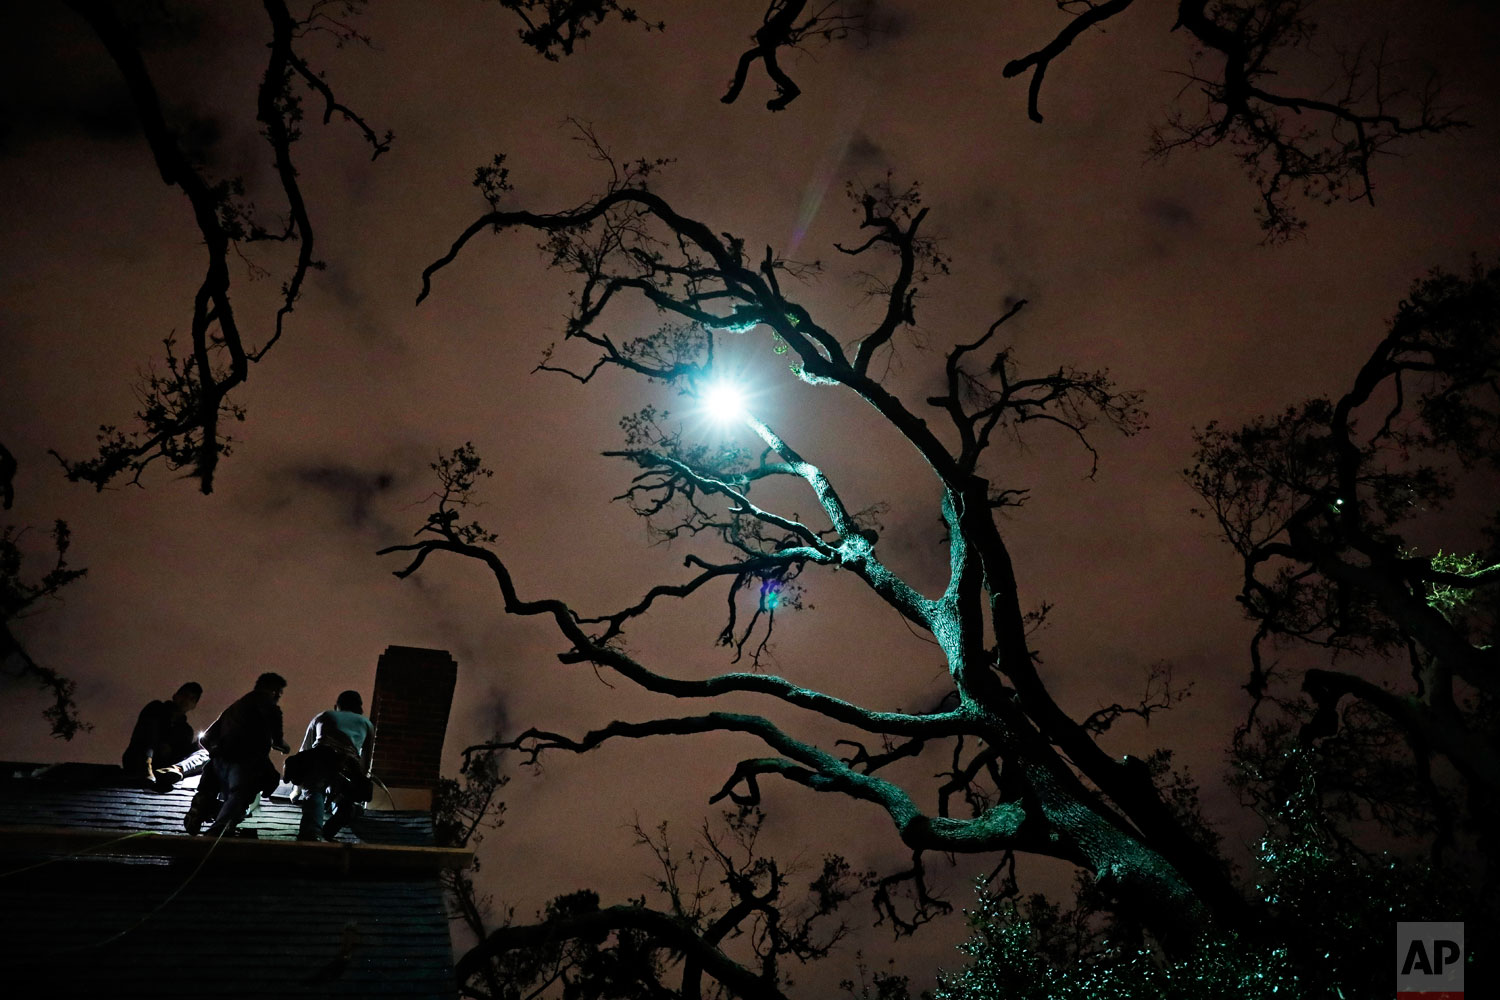 Workers repair a roof at night under trees left bare by Hurricane Michael in Panama City, Fla, Tuesday, Jan. 22, 2019. Some residents have been able to make their homes livable again with cosmetic repairs. Others simply left town: The county's student population is down 14 percent. For those still considered homeless their options are: move in with relatives, turn hotel rooms into temporary apartments, or get a tent. (AP Photo/David Goldman)